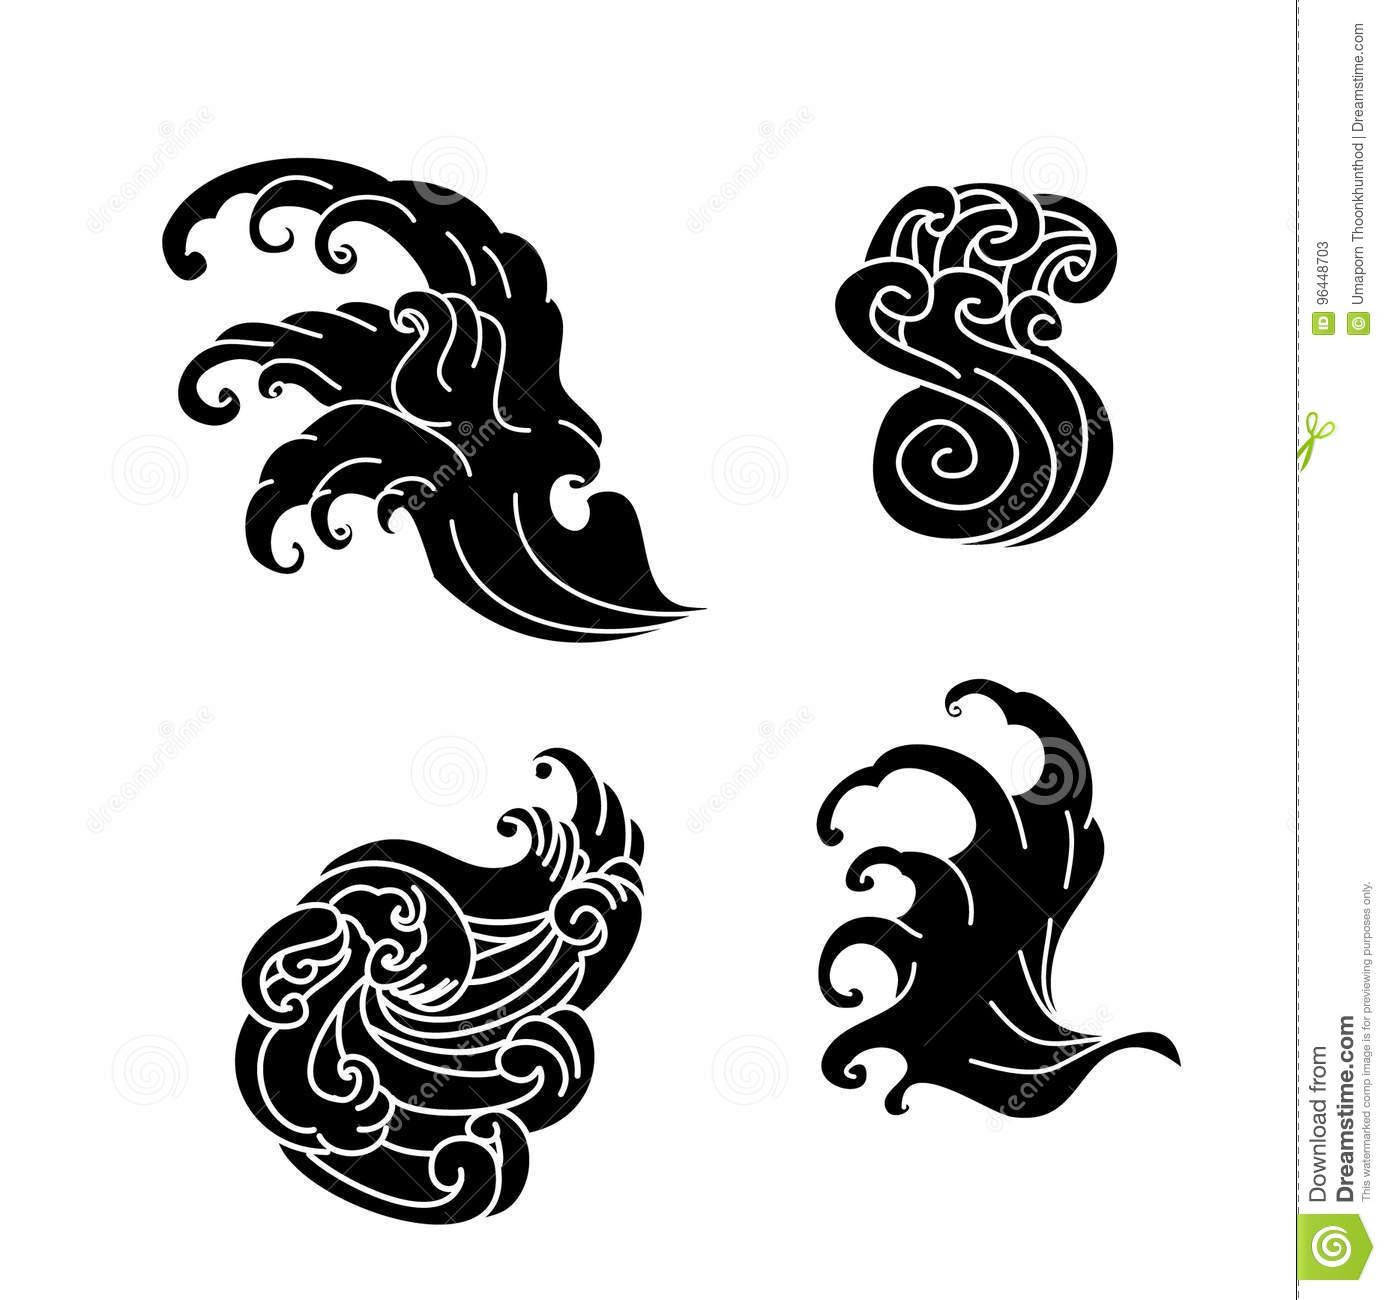 Japanese Wave Tattoo Vector In 2020 Japanese Wave Tattoos Waves Tattoo Japanese Waves